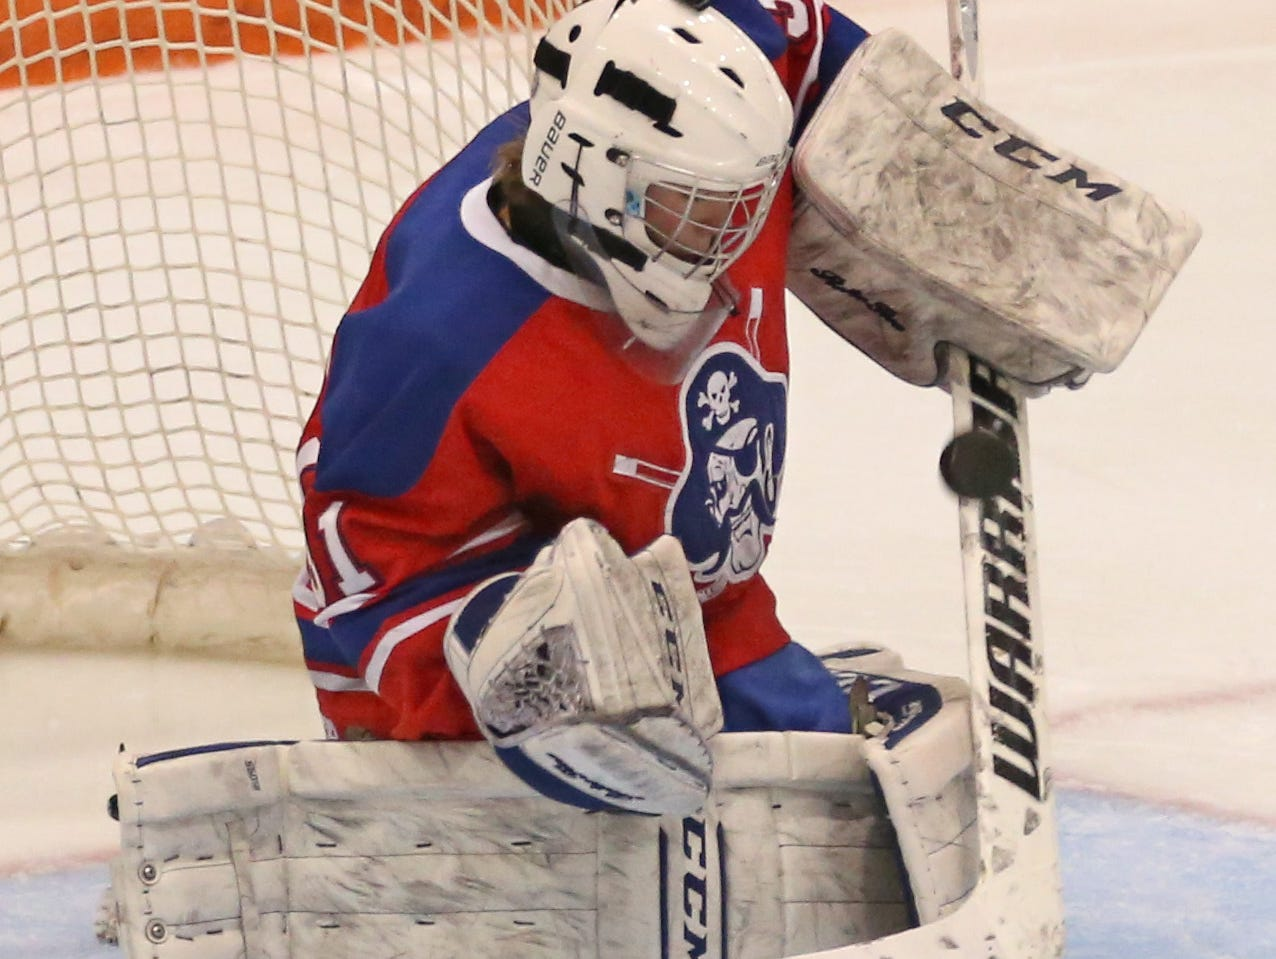 Ethan Kaiser stopped 94.2 percent of the shots he faced as a junior and is one of the key returning players for Fairport this season.